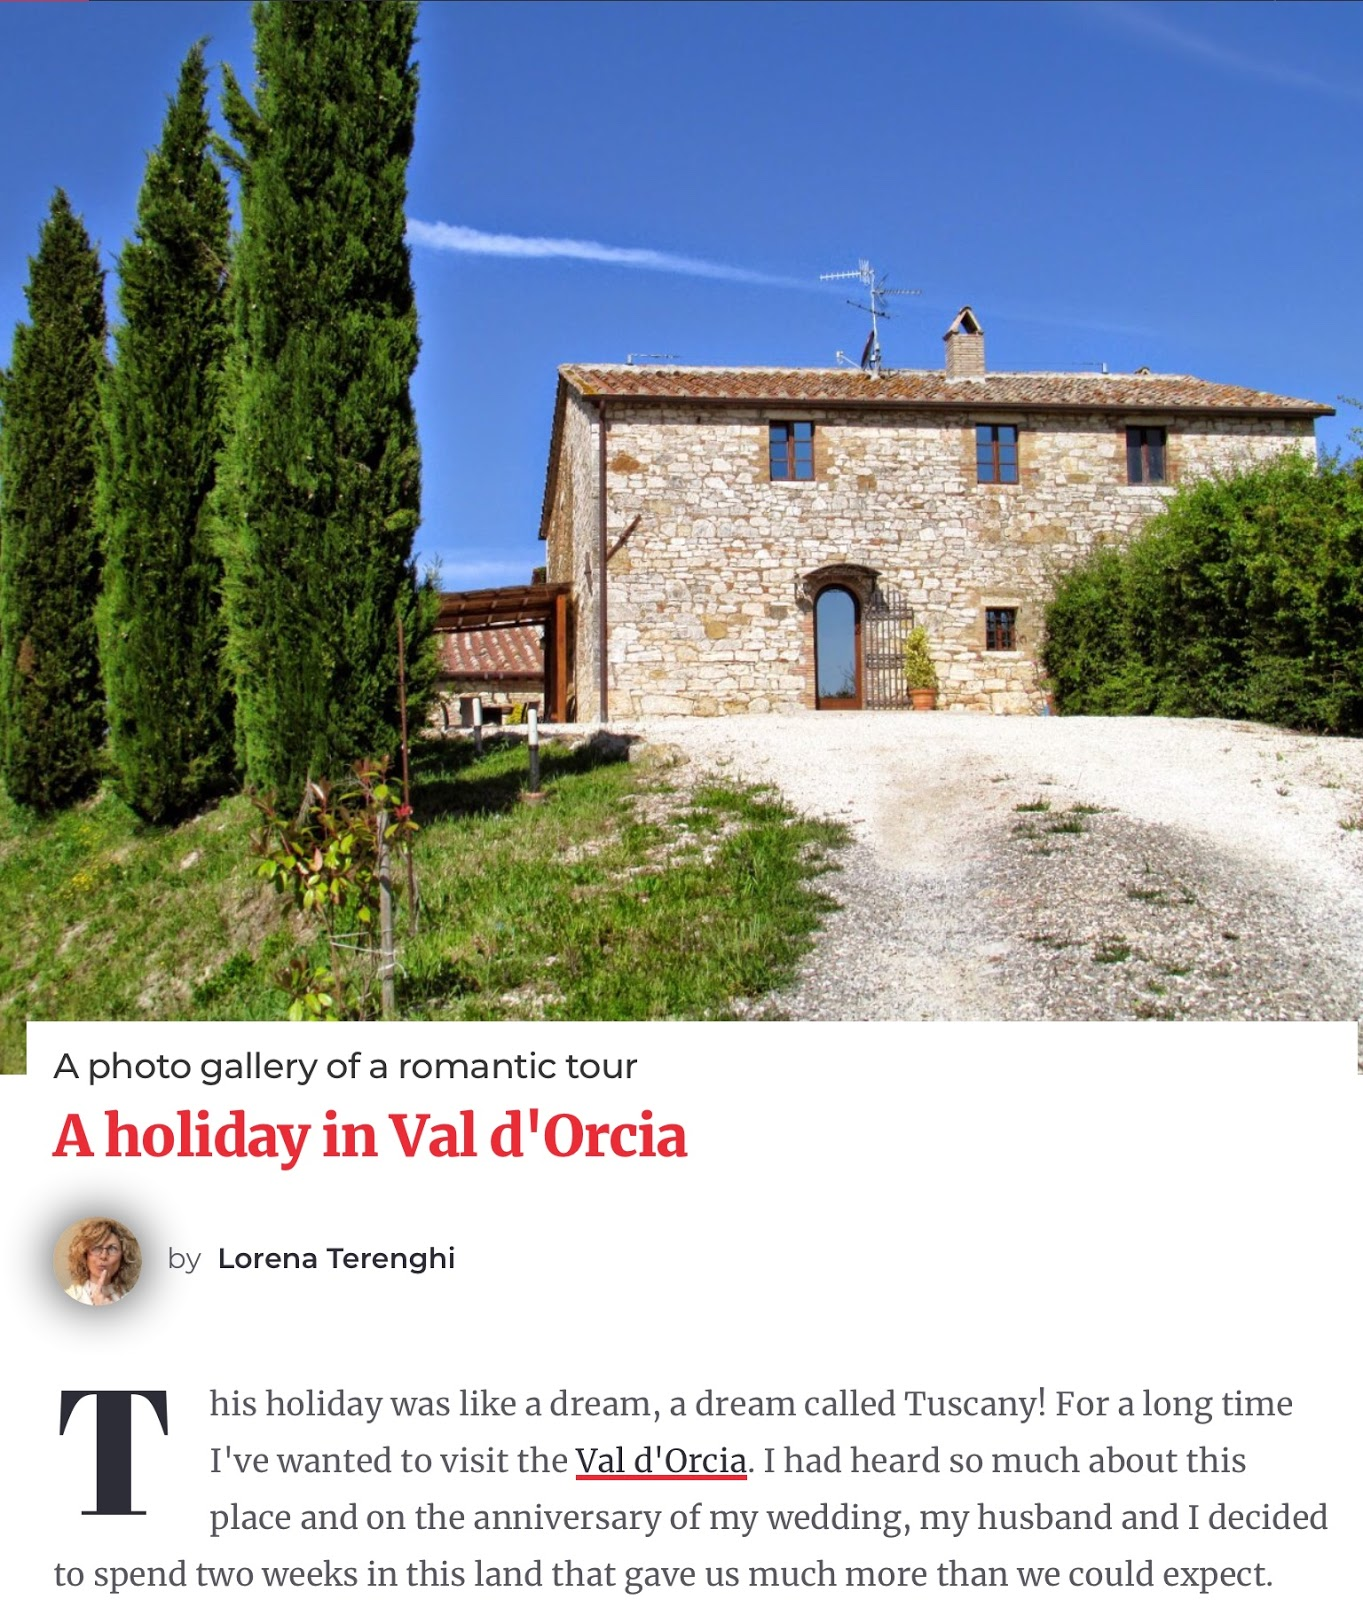 holiday in val d'orcia